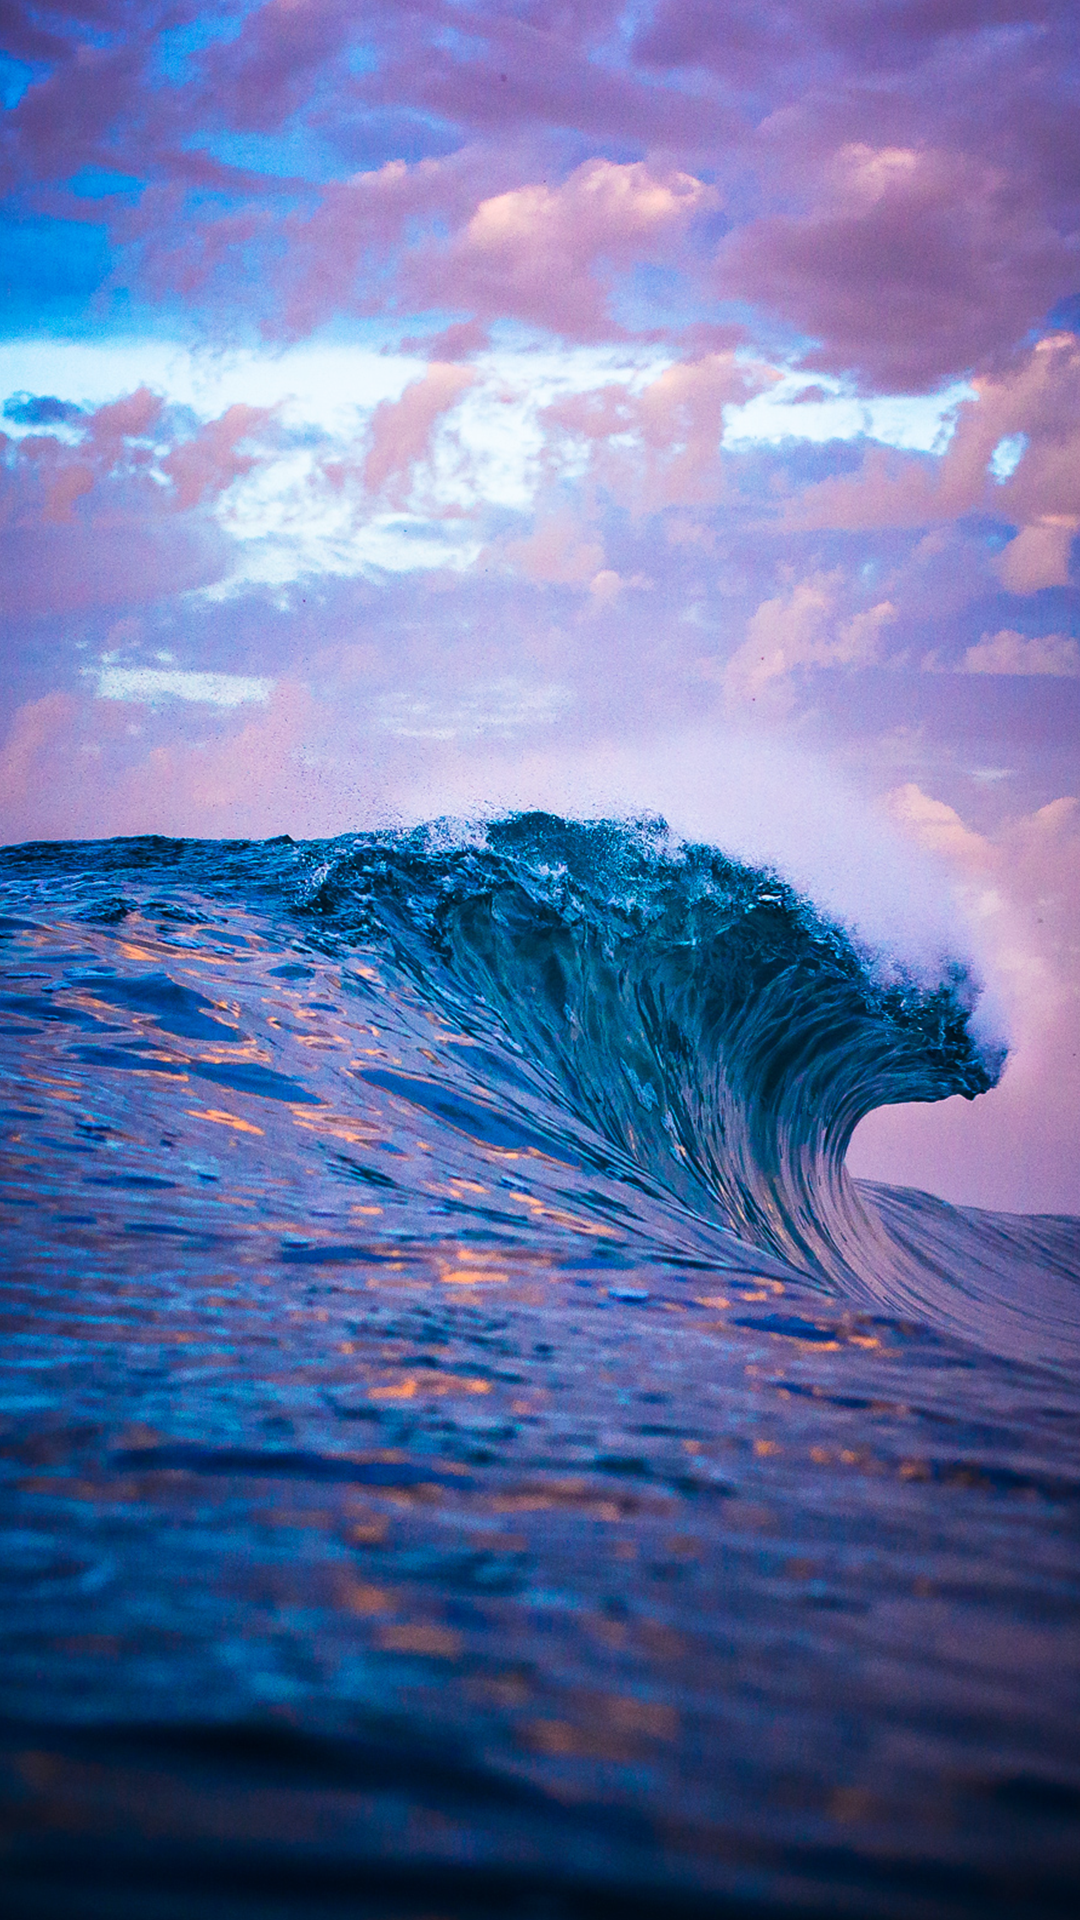 Macee 03 Waves Wallpaper Nature Wallpaper Cool Backgrounds